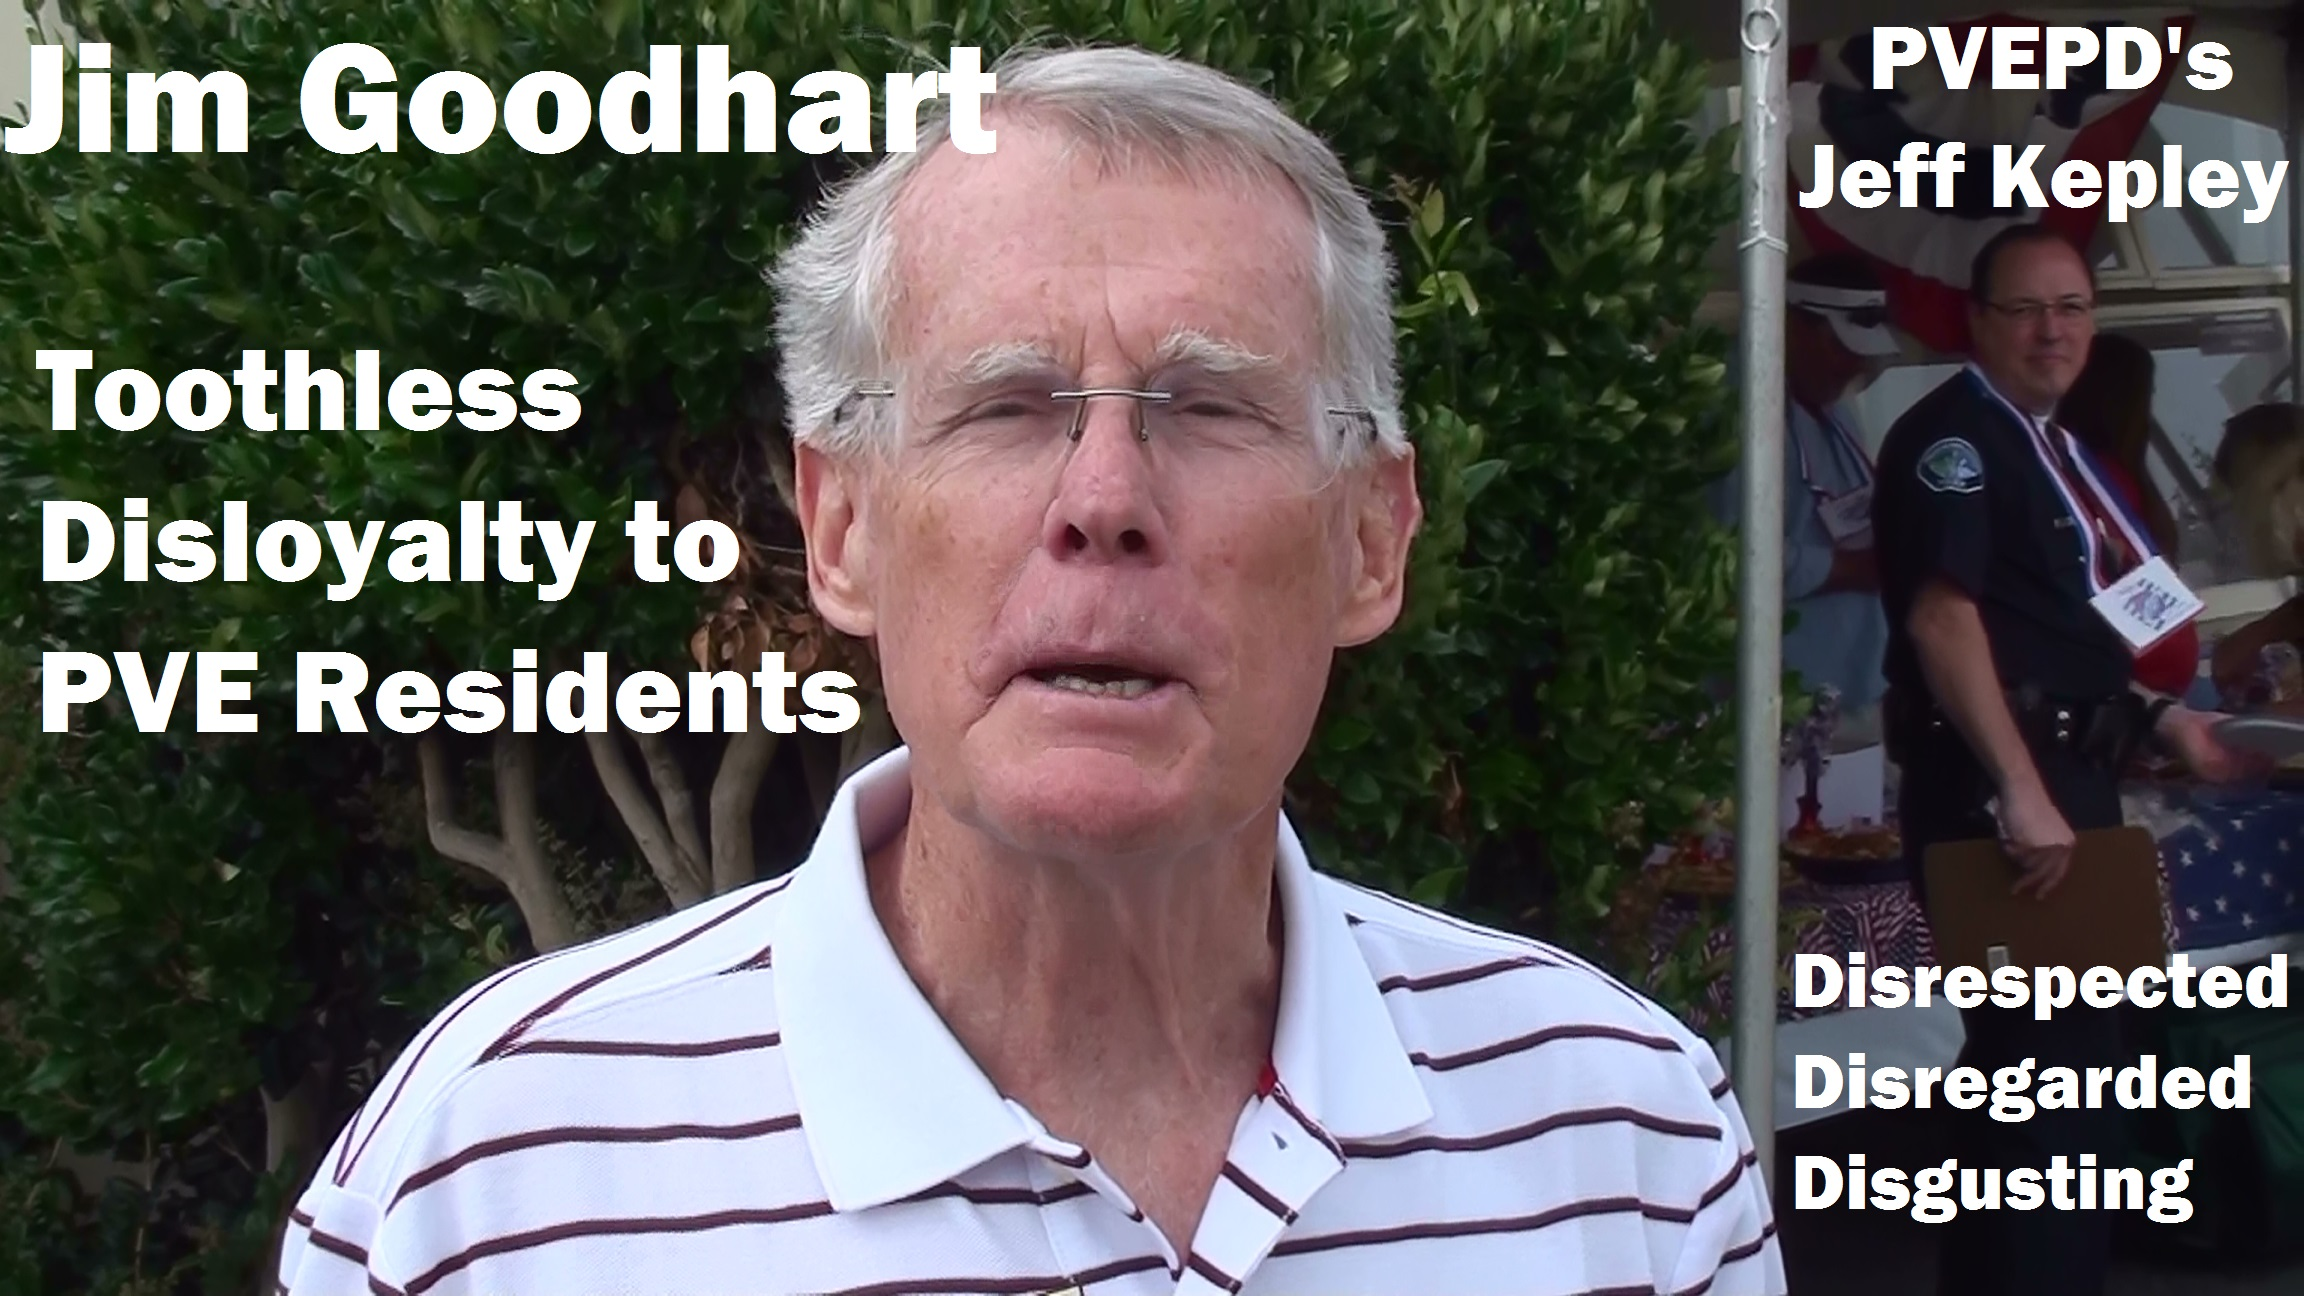 Jim Goodhart: Making sure that 99% of your property taxes gets squandered on Jeff Kepley's overstaffed and overpaid mod squad